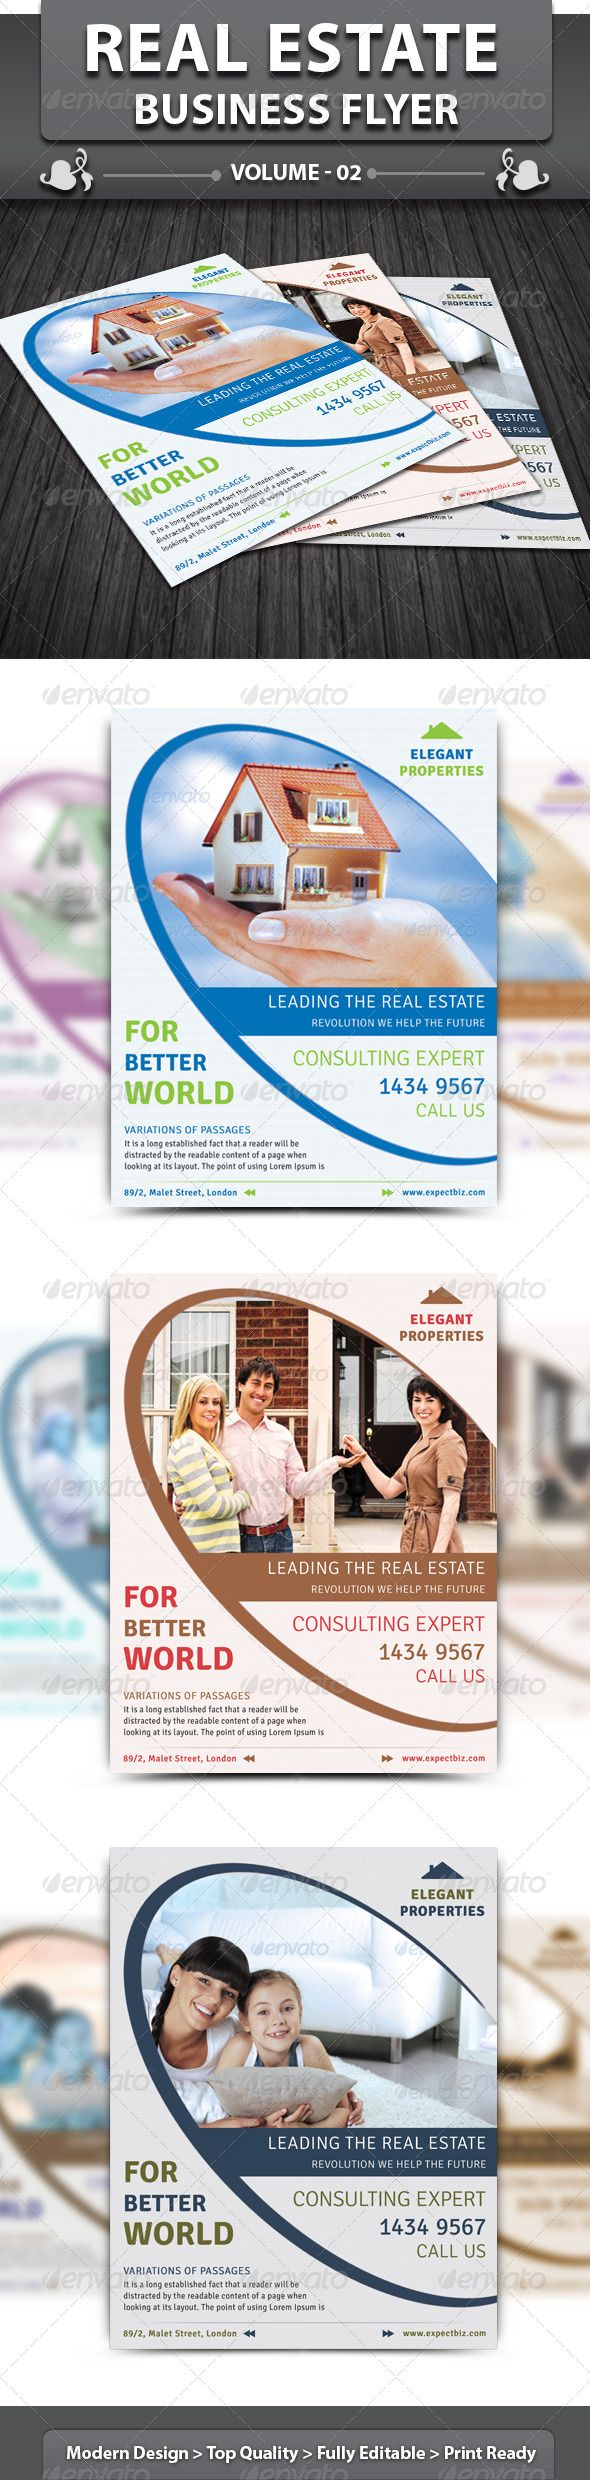 1000 images about real estate psd template real estate business flyer volume 2